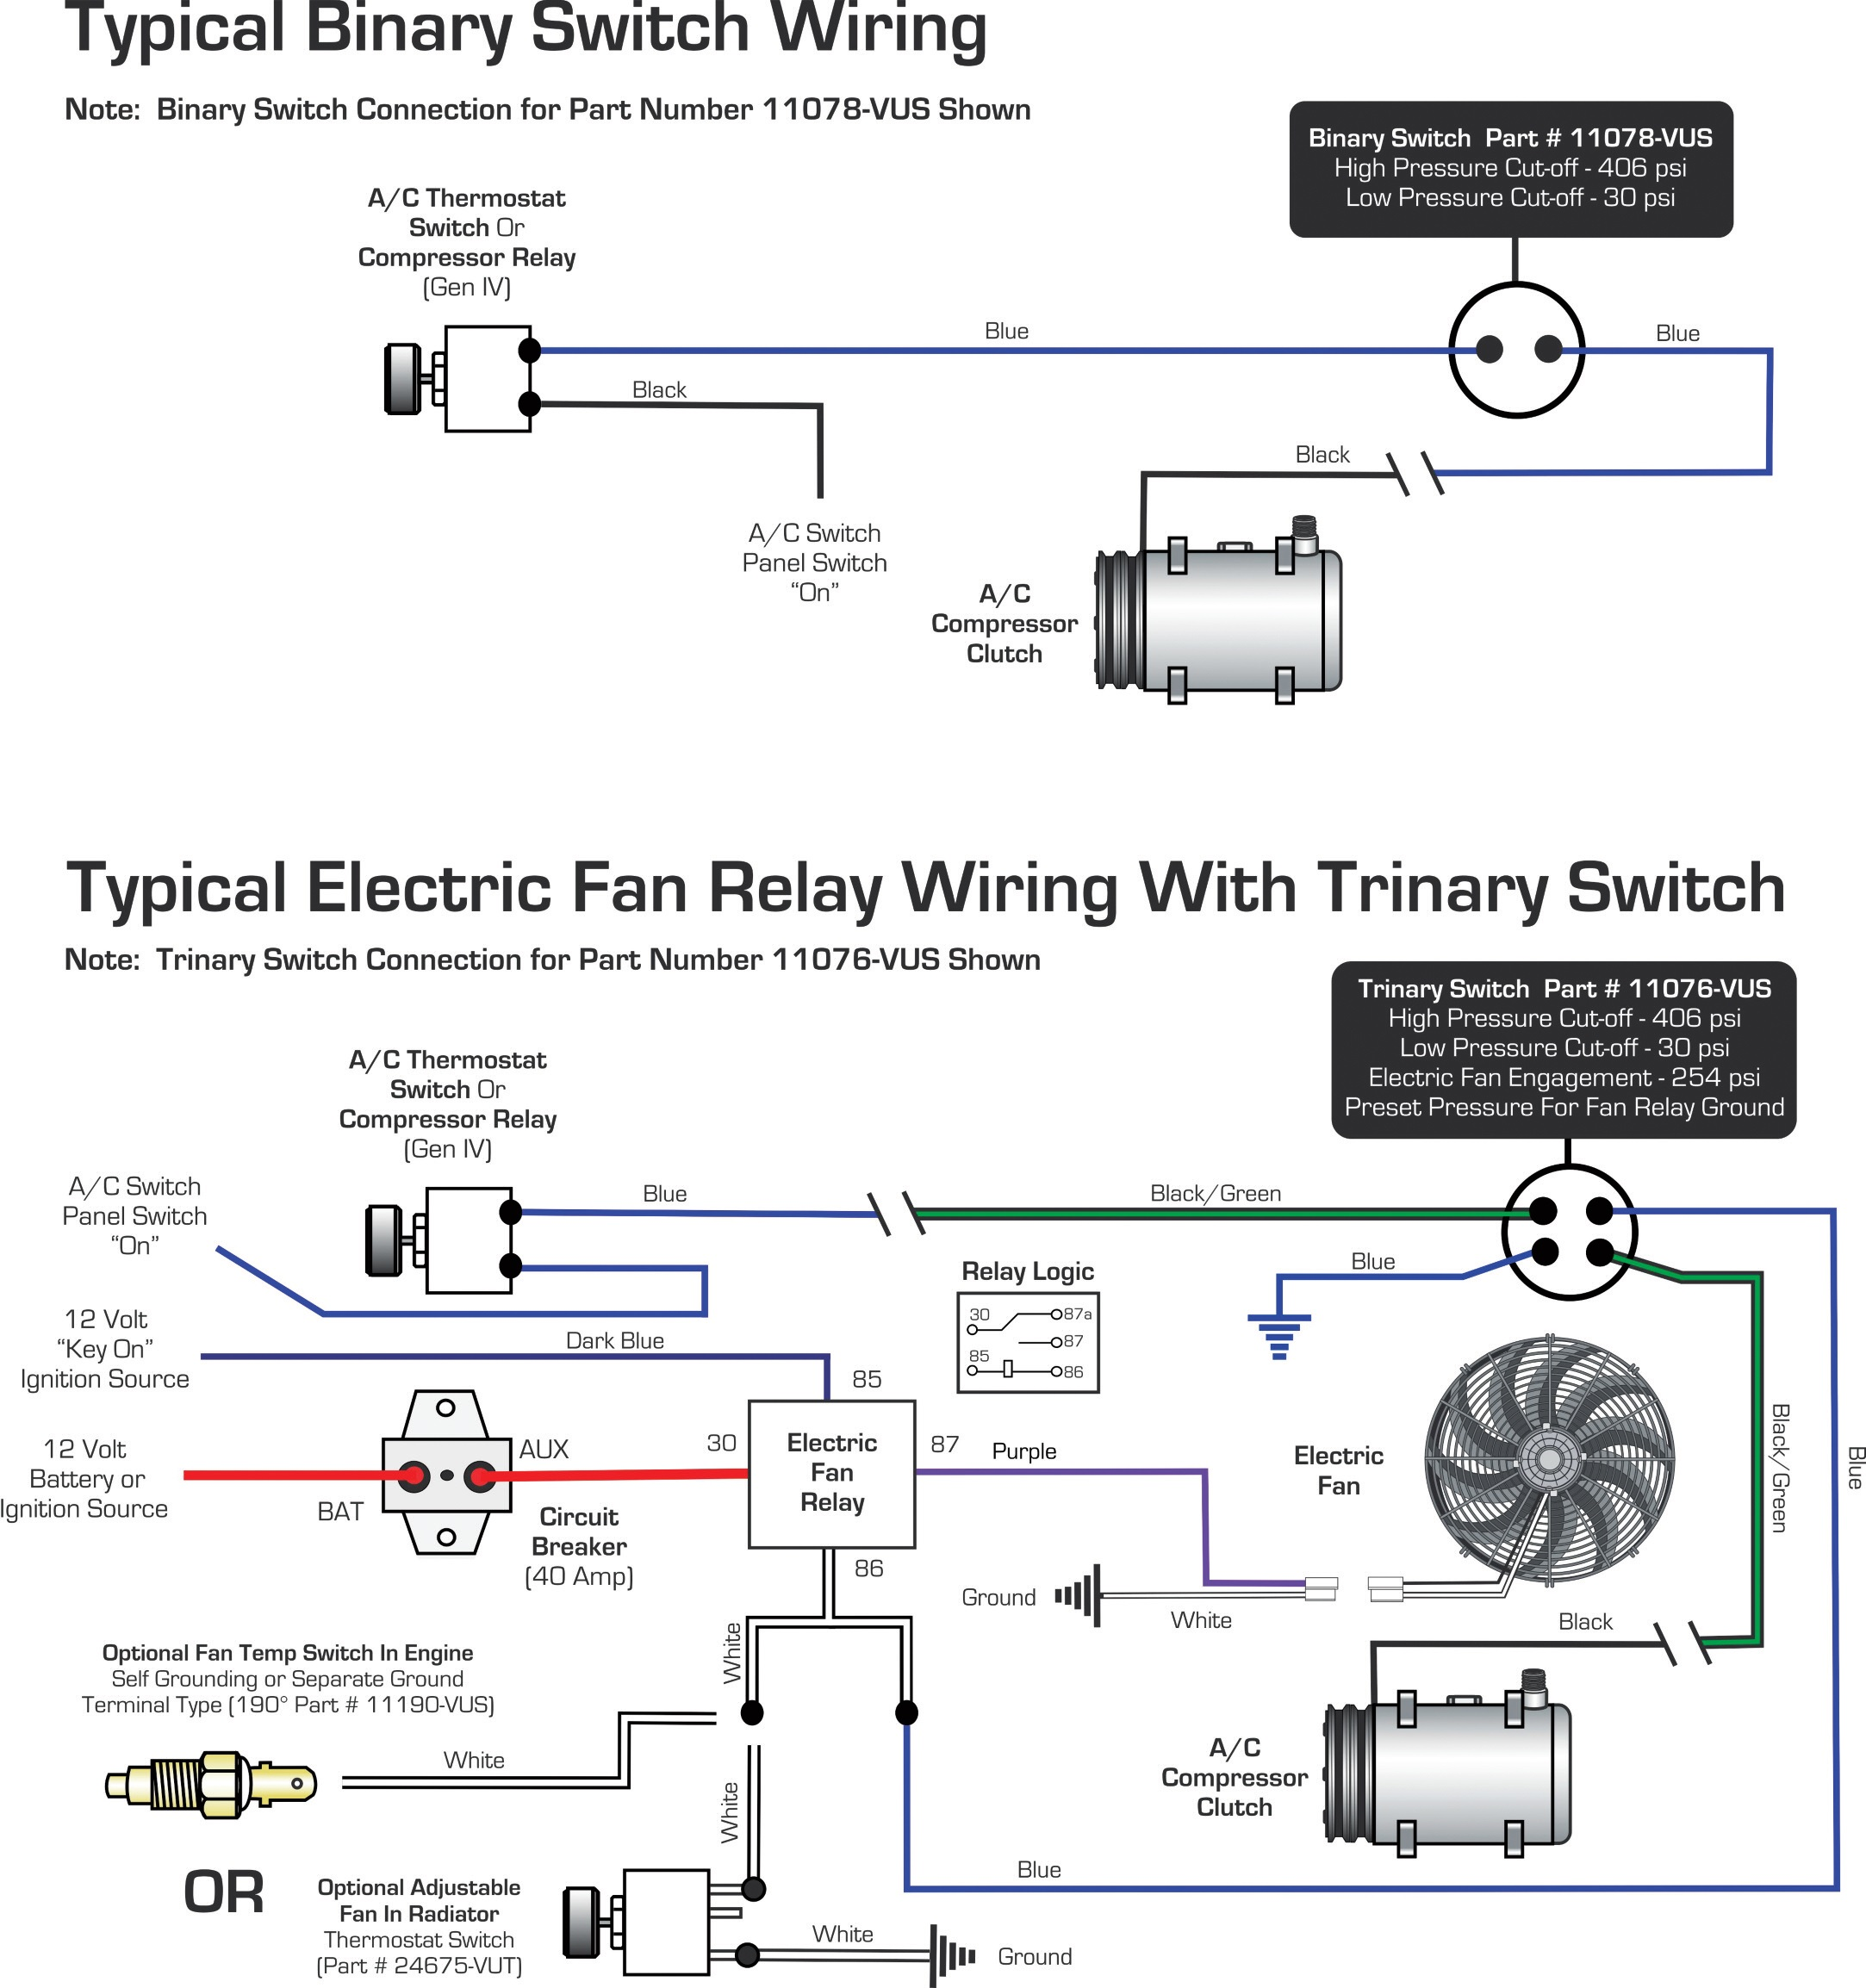 Air Switch Wiring Diagram - Wiring Diagrams Load on